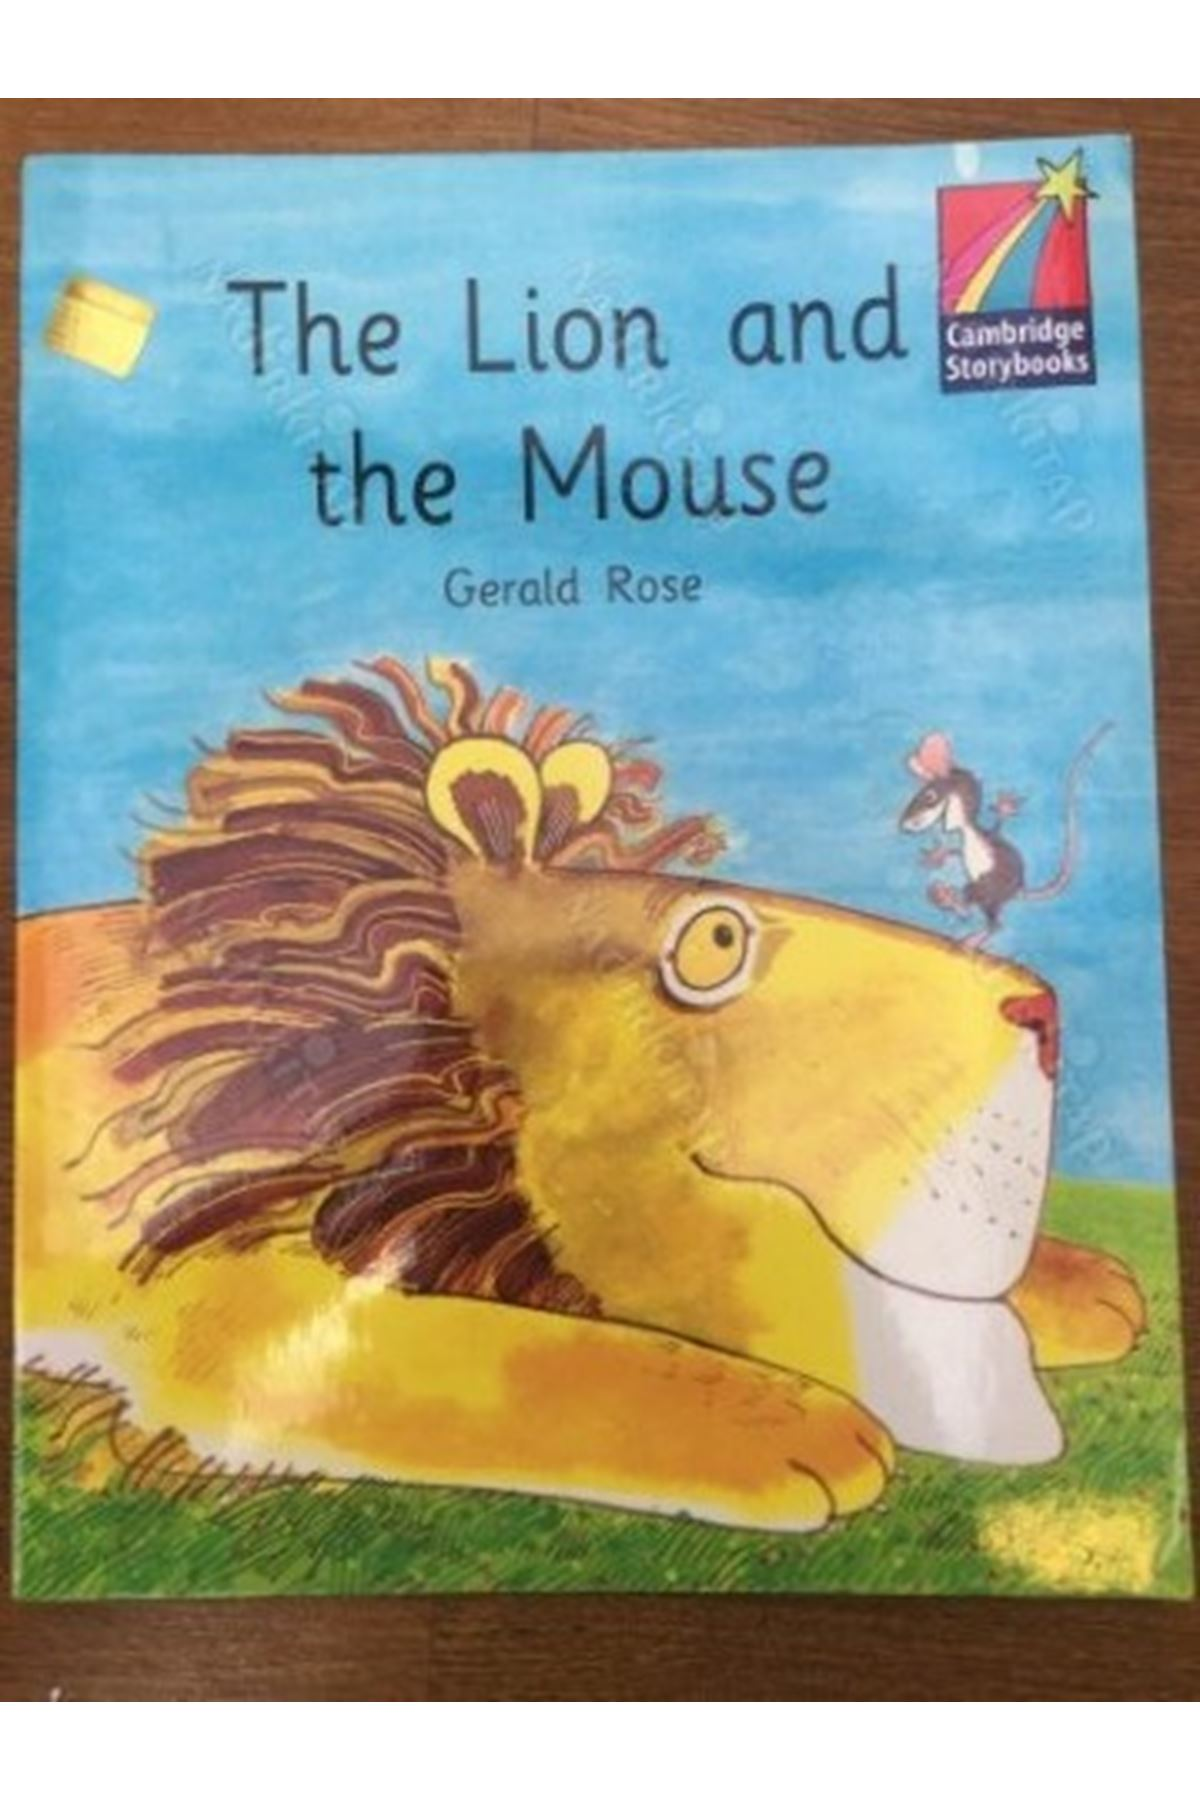 GERALD ROSE - THE LİON AND THE MOUSE